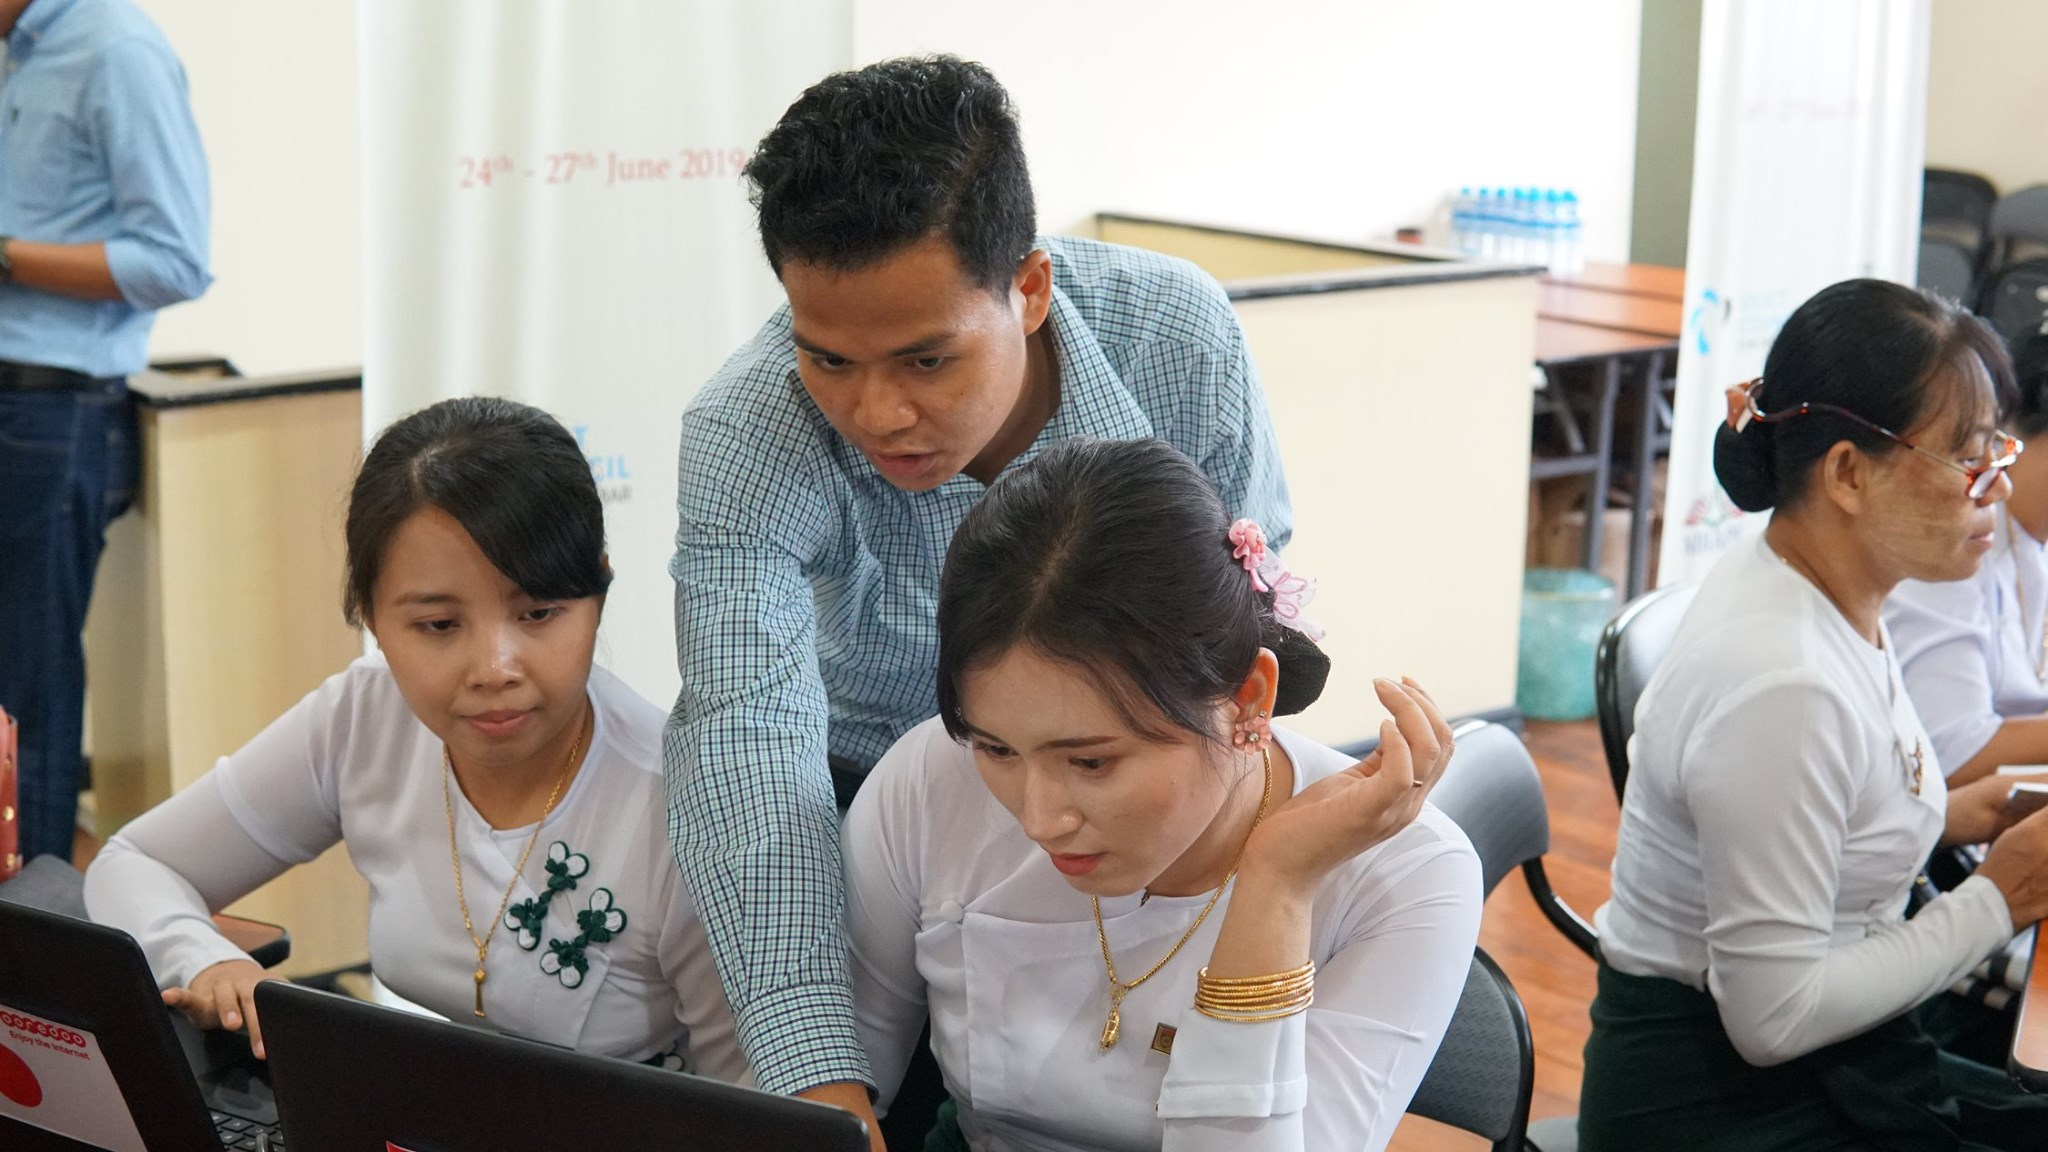 Digital Literacy Teachers Training Program Launches - 33 secondary school teachers took part in a digital literacy training pilot project co-organized by US ICT Council and the Myanmar Book Aid and Preservation Foundation (MBAPF) on June 24, 2019. The DLTT program aligns with a Digital Economy Development Committee roadmap goal and was approved by the Ministry of Education.